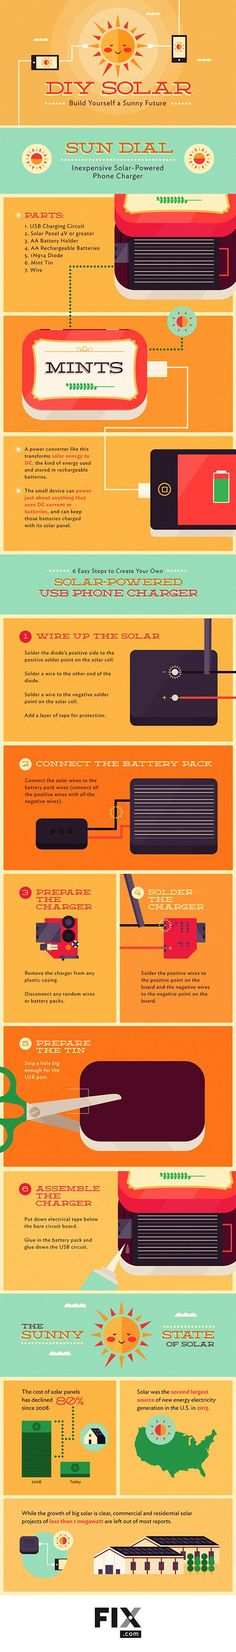 INFOGRAPHIC: Make your own solar phone charger Inhabitat - Sustainable Design Innovation, Eco Architecture, Green Building Solar Powered Phone Charger, Solar Phone Chargers, Solar Charger, Permaculture Design, Solar Solutions, Diy Tech, Eco Architecture, Power Energy, Healthy Environment